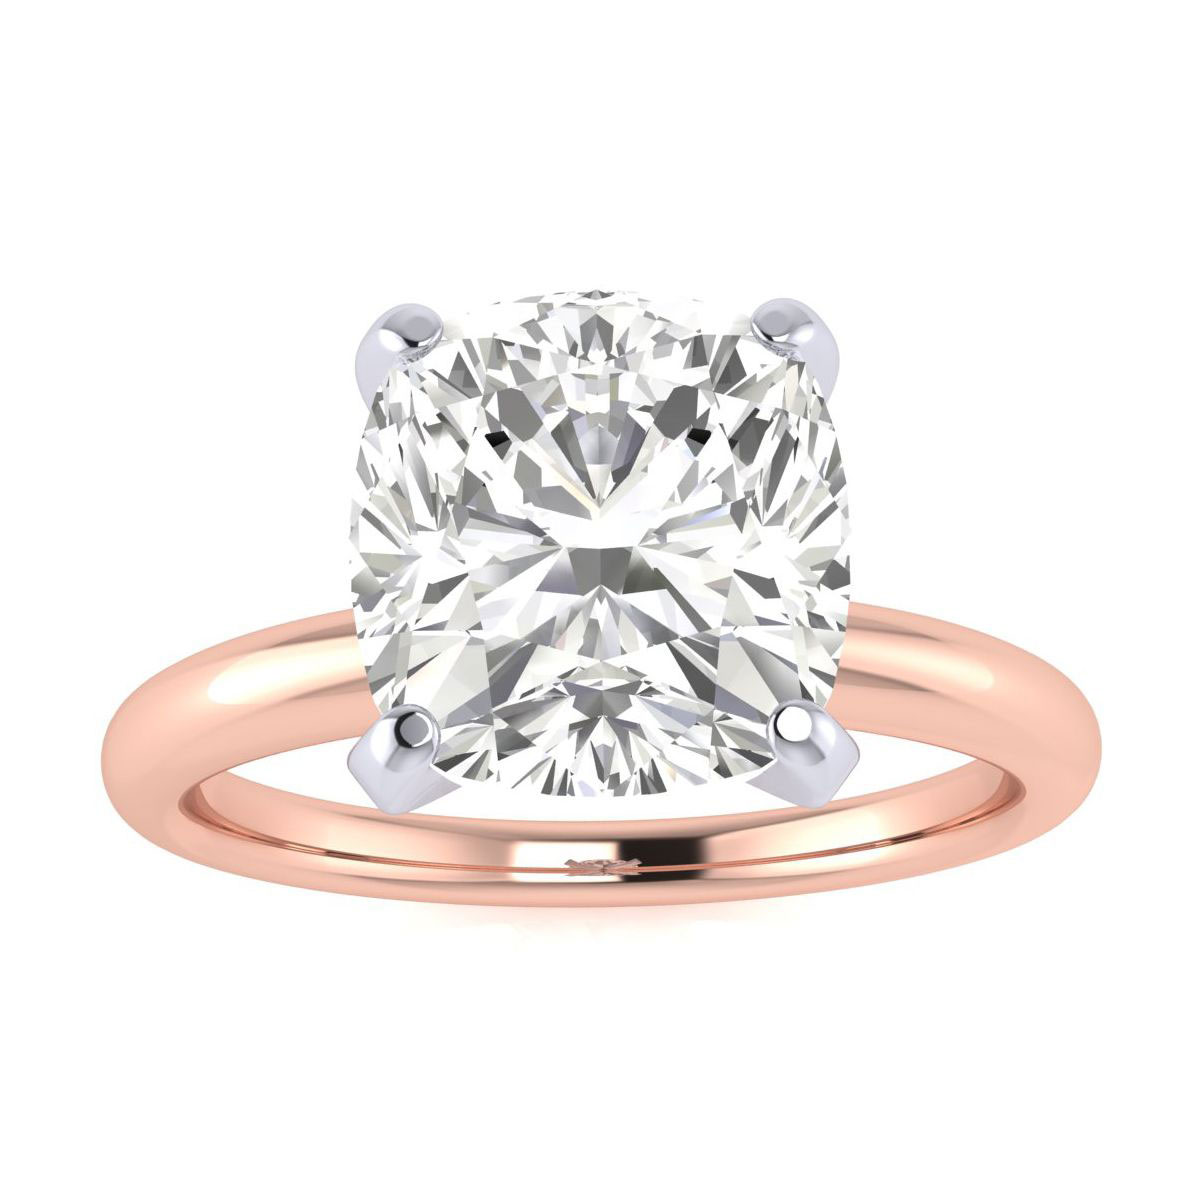 3ct Very Fine Cushion Diamond Solitaire in 14k Rose Gold. Incredible Value.